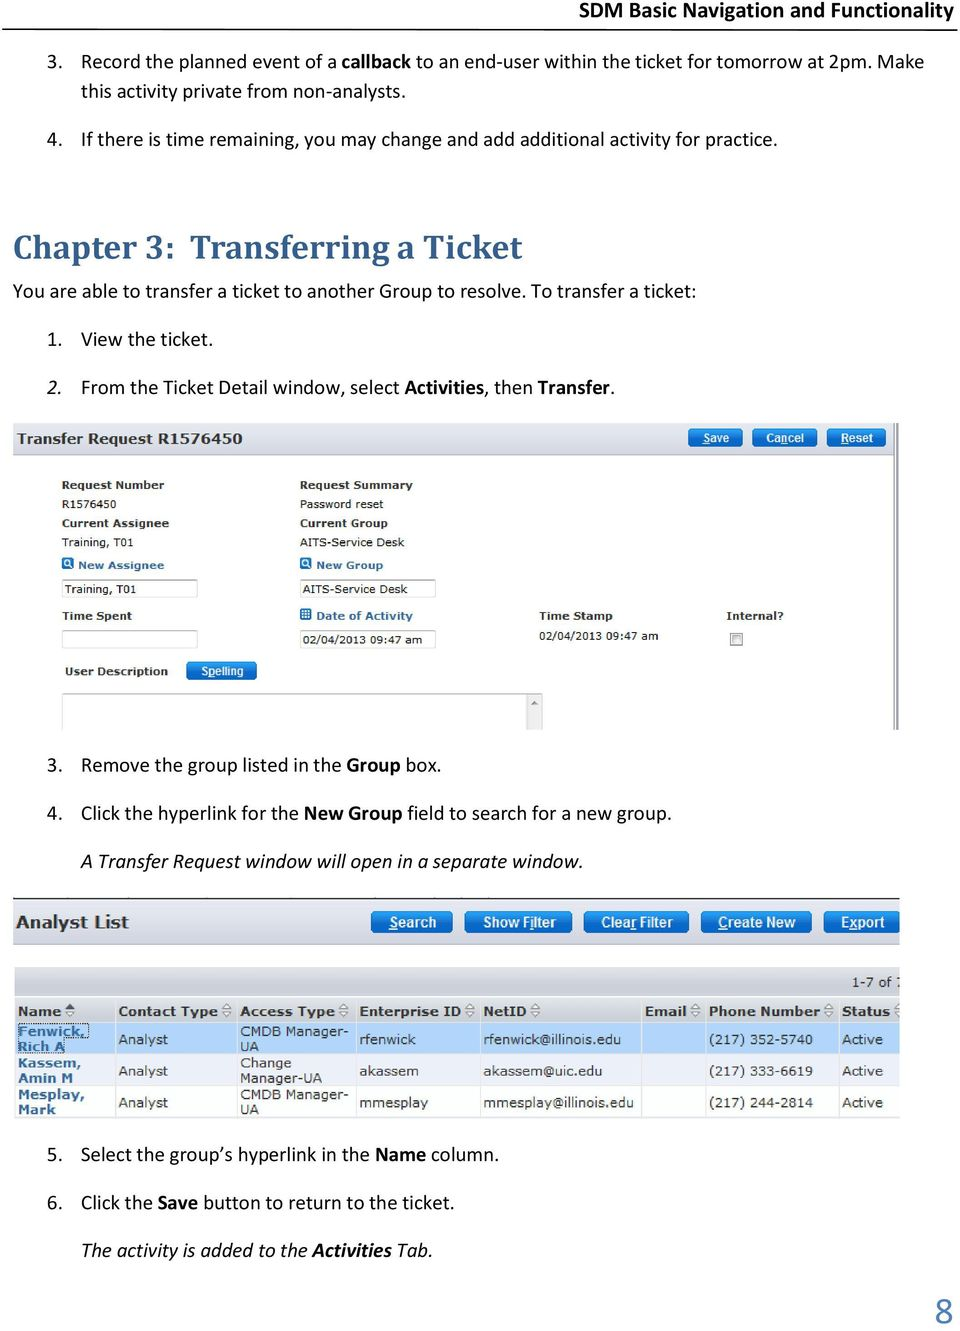 To transfer a ticket: 1. View the ticket. 2. From the Ticket Detail window, select Activities, then Transfer. 3. Remove the group listed in the Group box. 4.